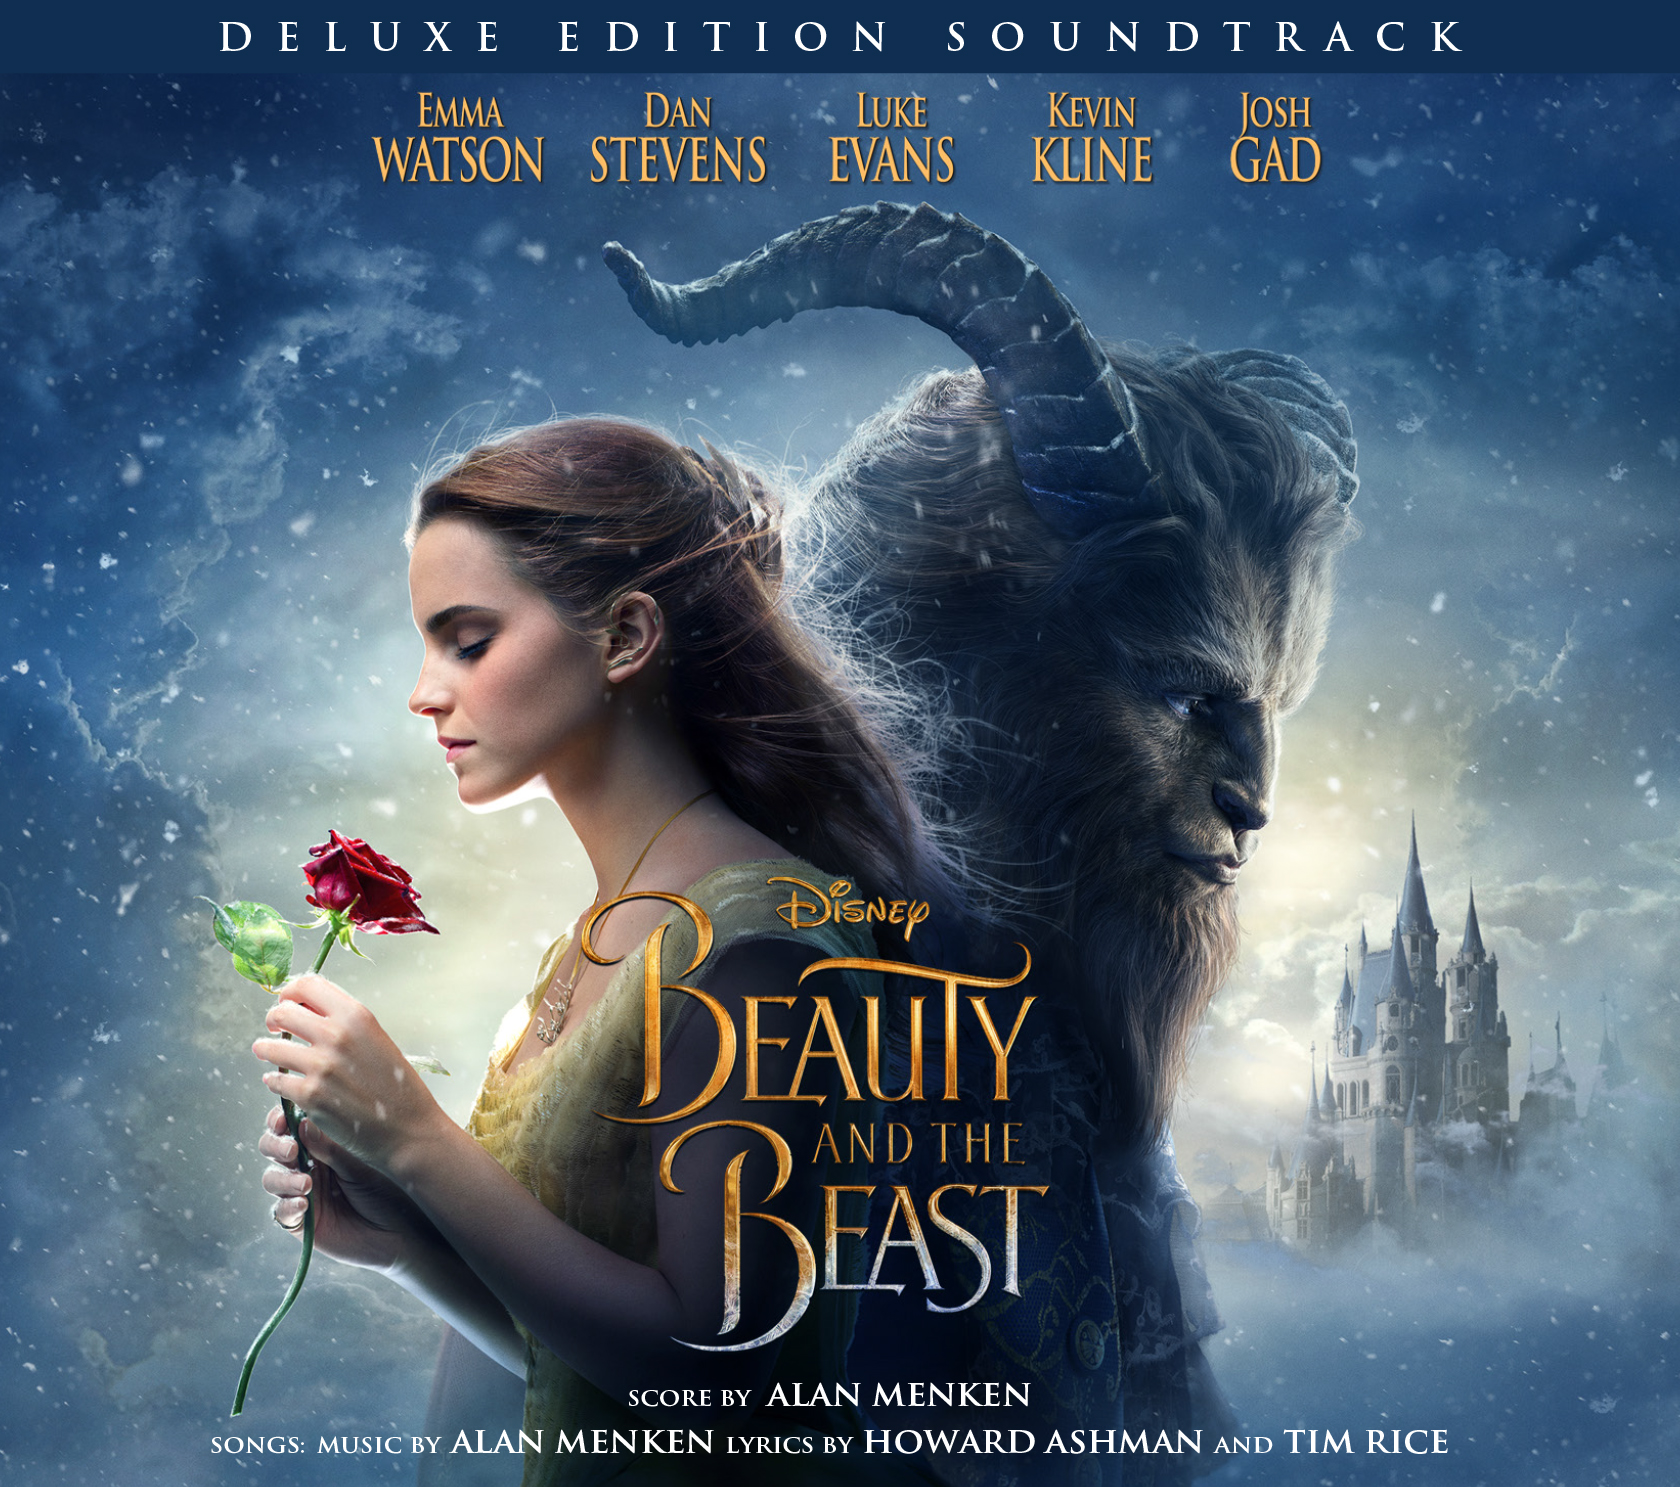 Celine Dion to Perform Original Song for Disney's BEAUTY AND THE BEAST!!!